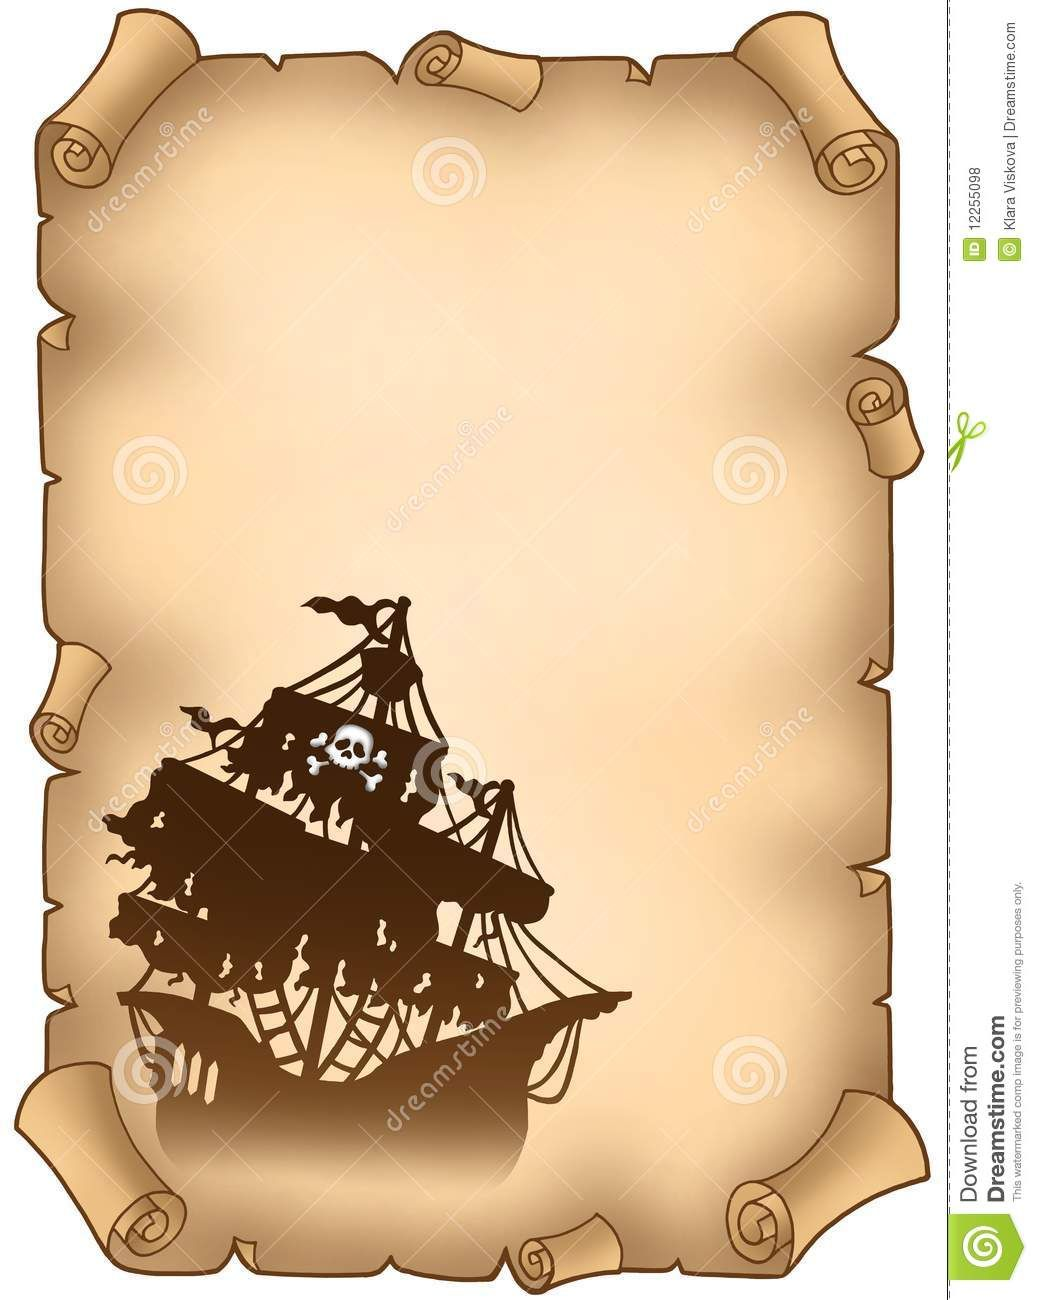 Pirate Scroll Banners